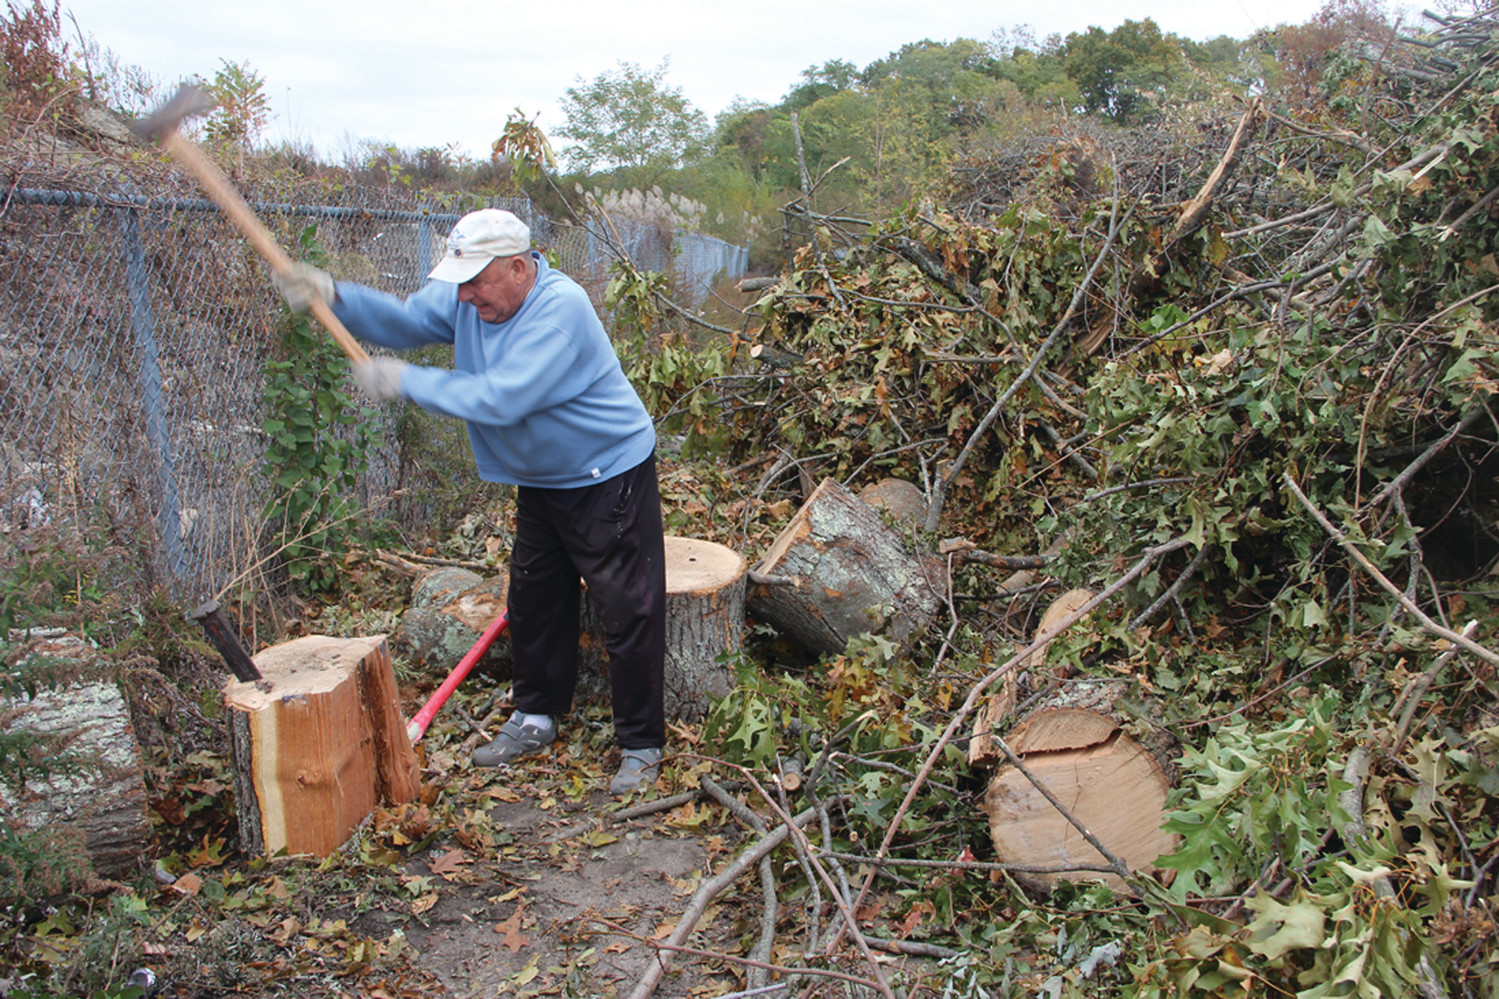 FIRE WOOD: Manny Silva, 78, splits logs outside the city compost station, where a mountain of storm debris has been piled pending chipping. He was anxious for the exercise and to save on wood for his stove.